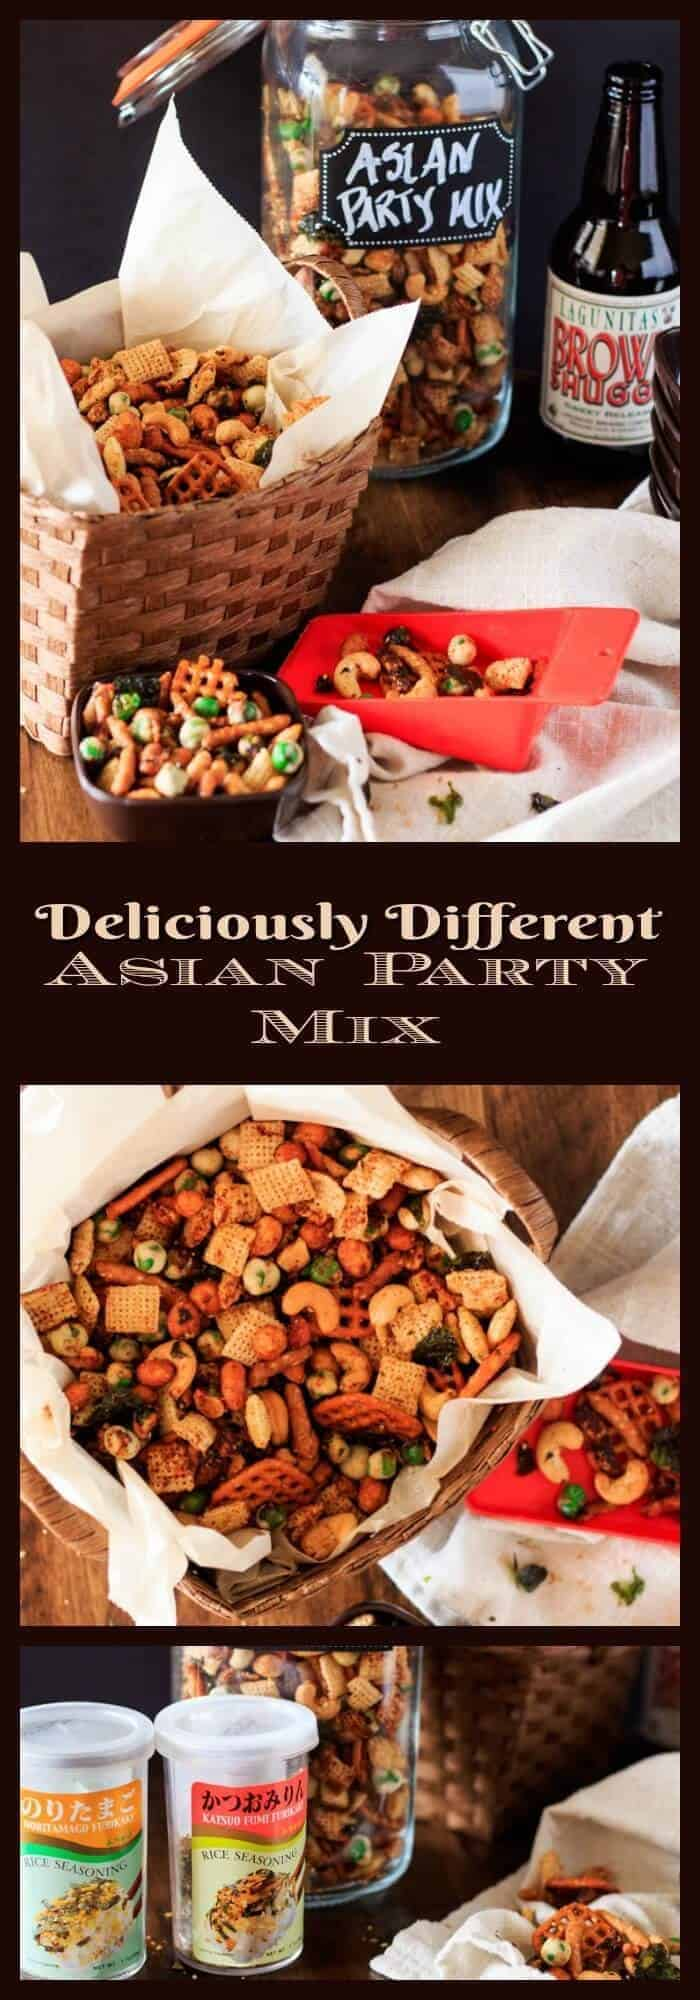 Asian Party Mix - Wasabi peas, sesame sticks, roasted cashews and honey roasted peanuts tossed with a sesame, ginger, and tamari sauce and sprinkled with furikake... Deliciously Different Asian Party Mix delivers umami, salty, savory, spicy, and a hint of sweet in one delicious handful!